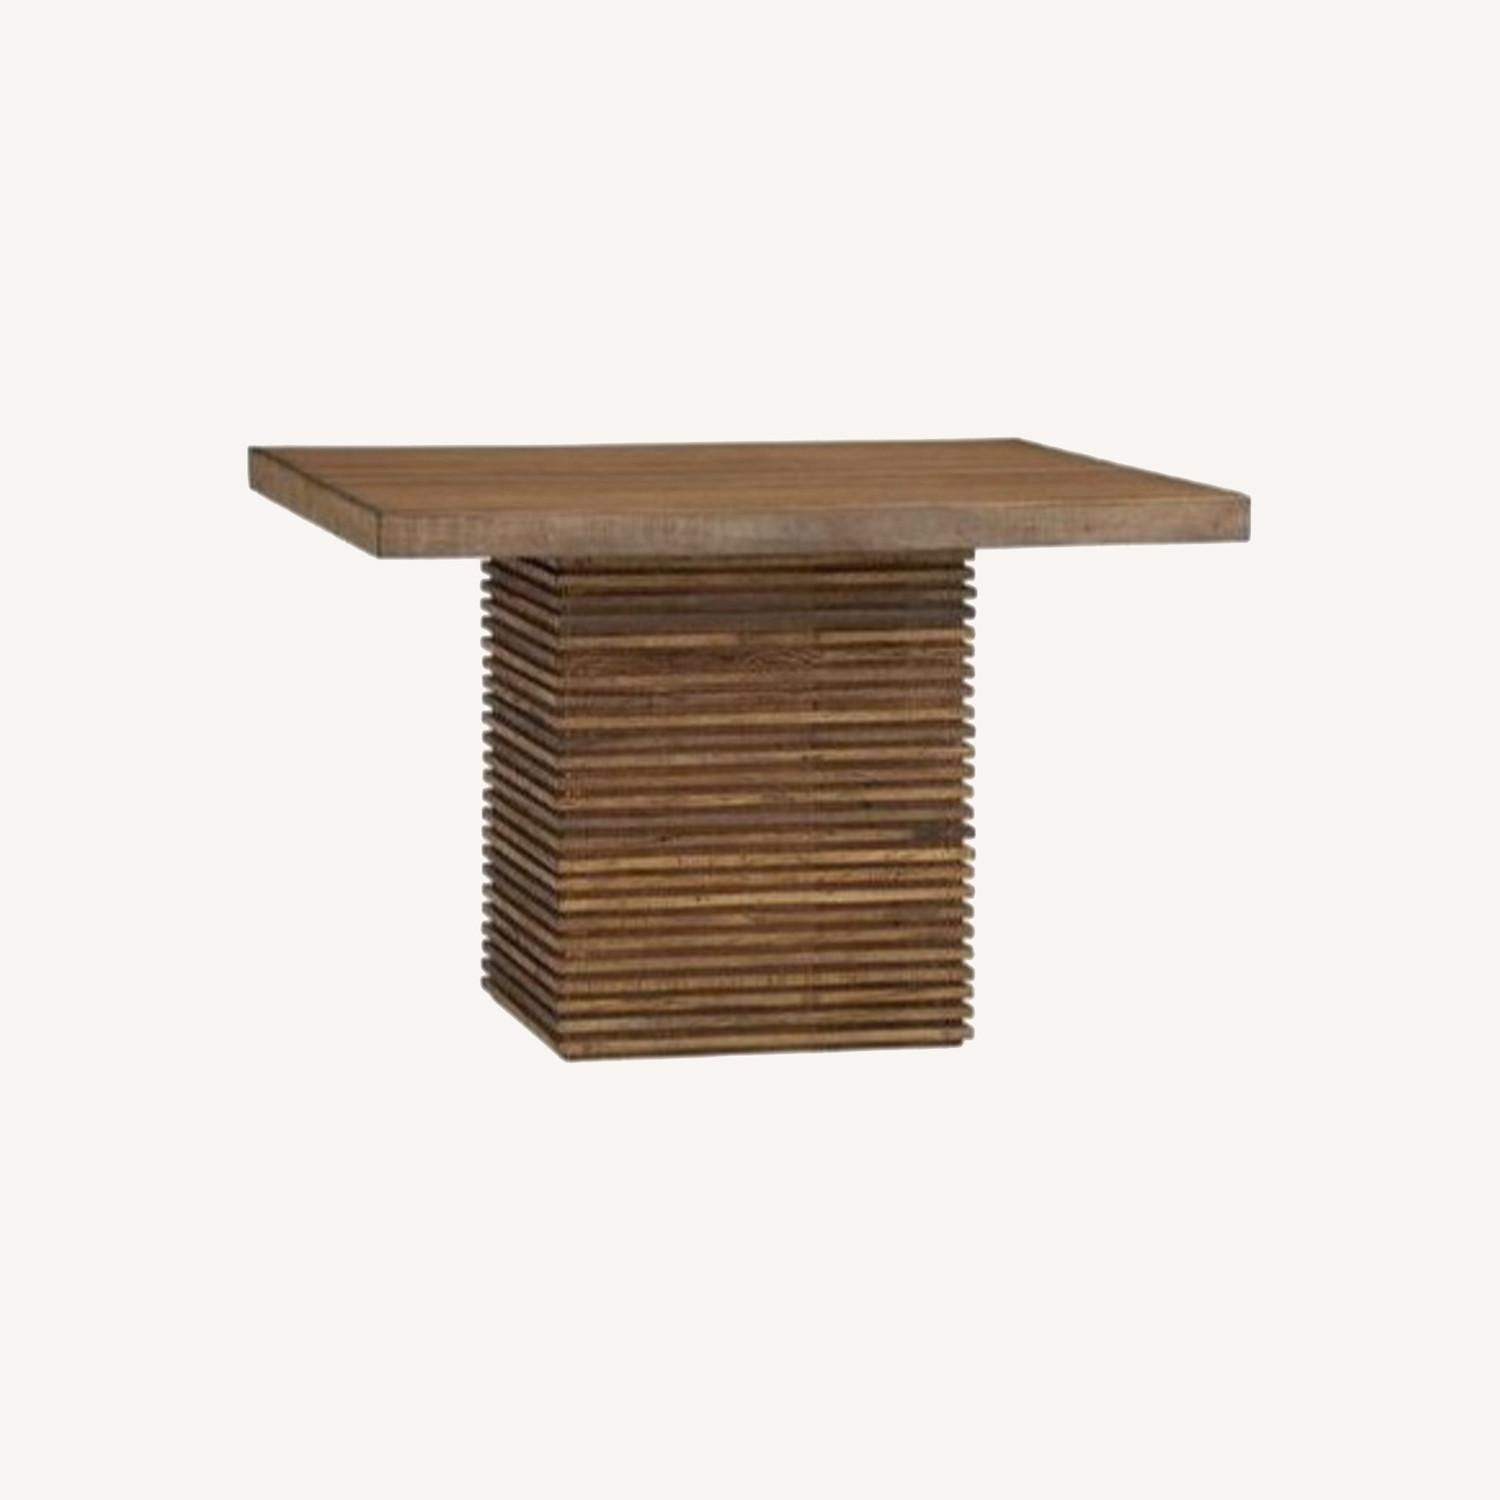 Crate and Barrel Paloma II Square Table - image-0